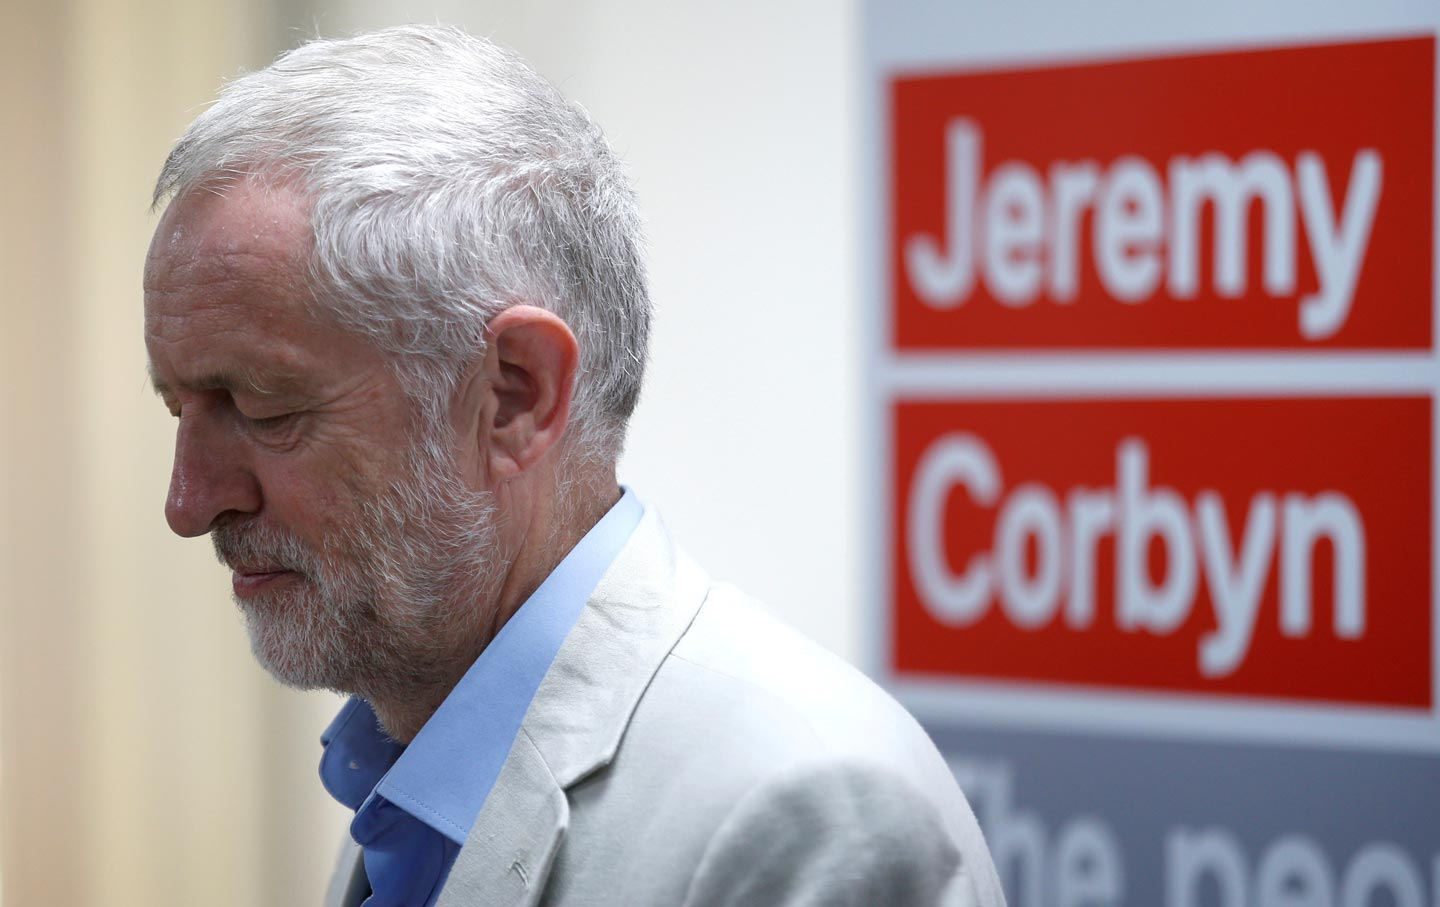 Jeremy Corbyn, leader of the UK